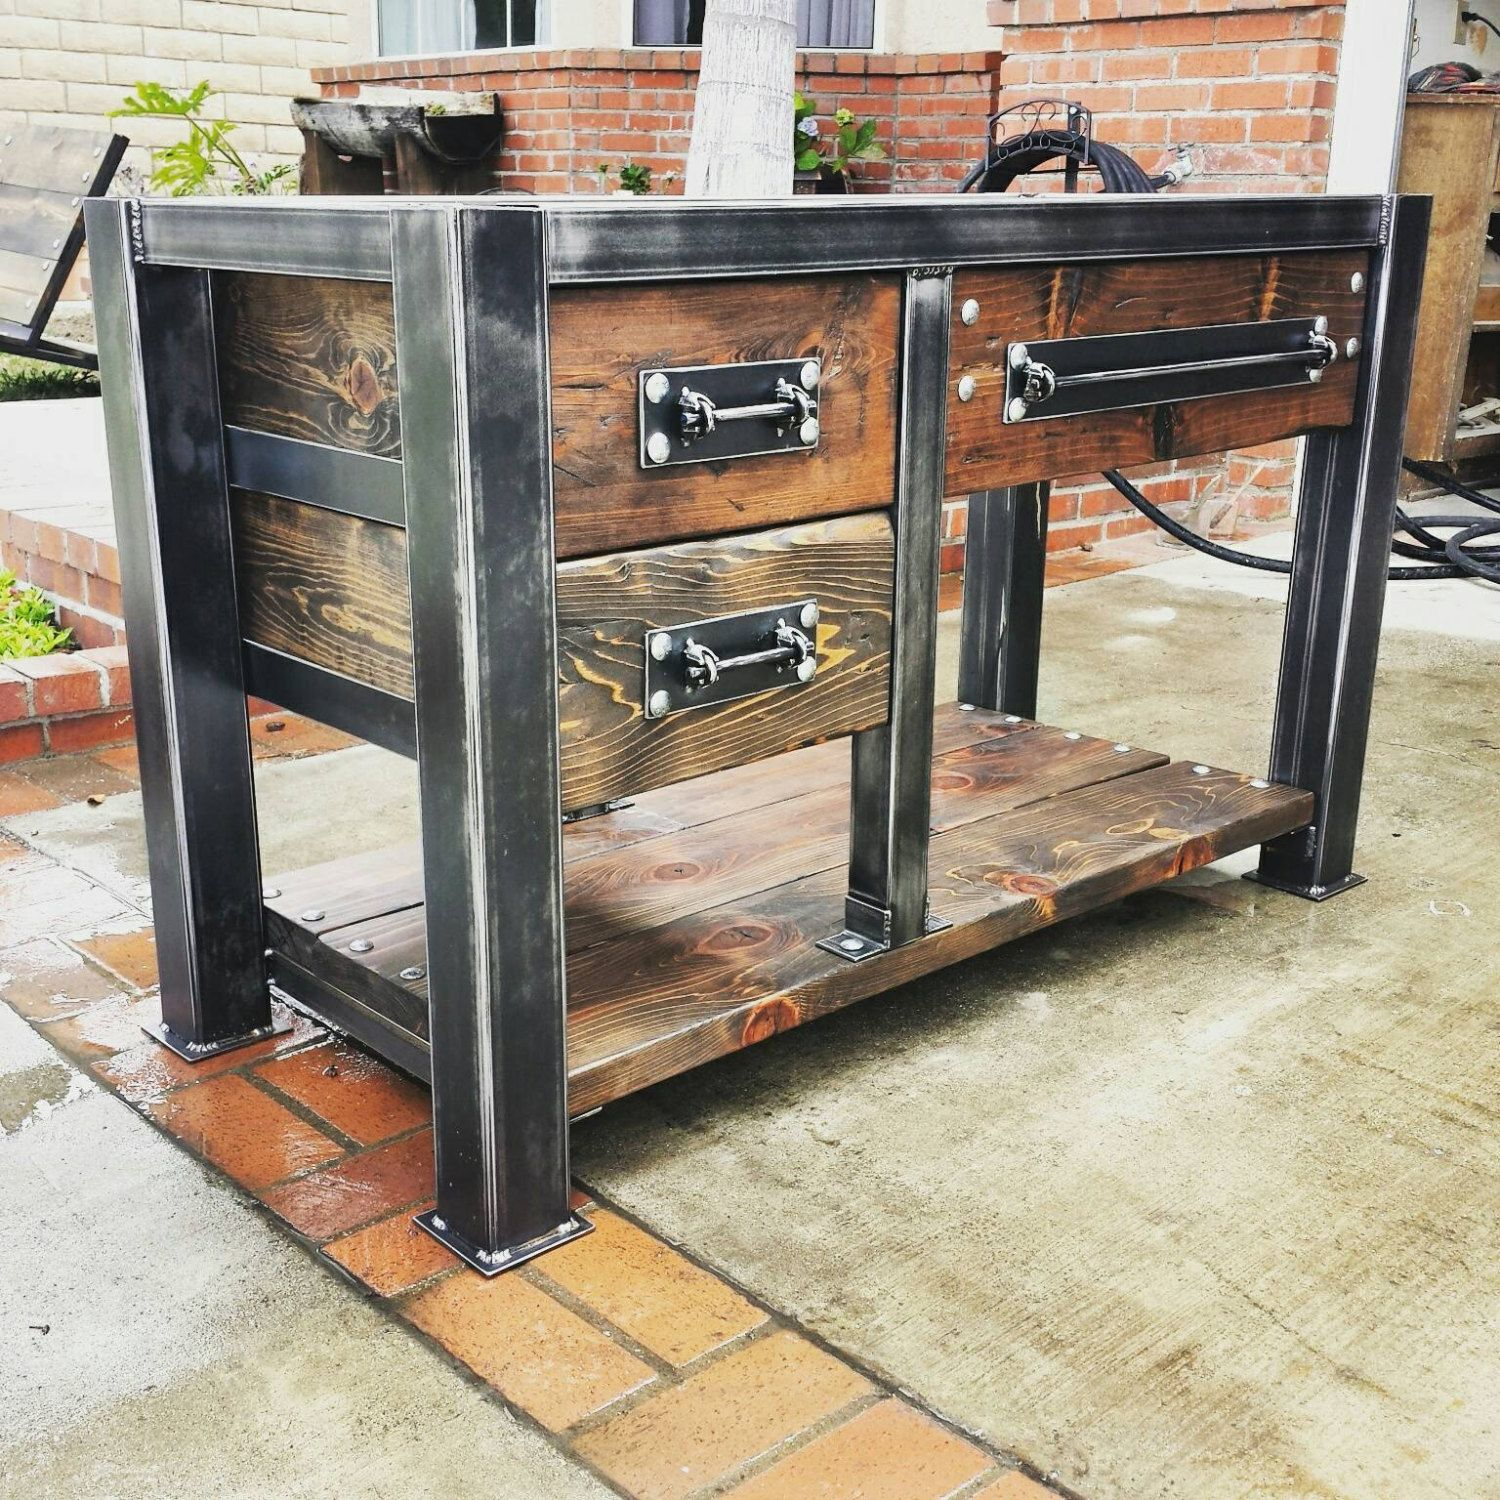 Vintage industrial reclaimed bathroom vanity no top ideas pinterest - Tablones de madera segunda mano ...